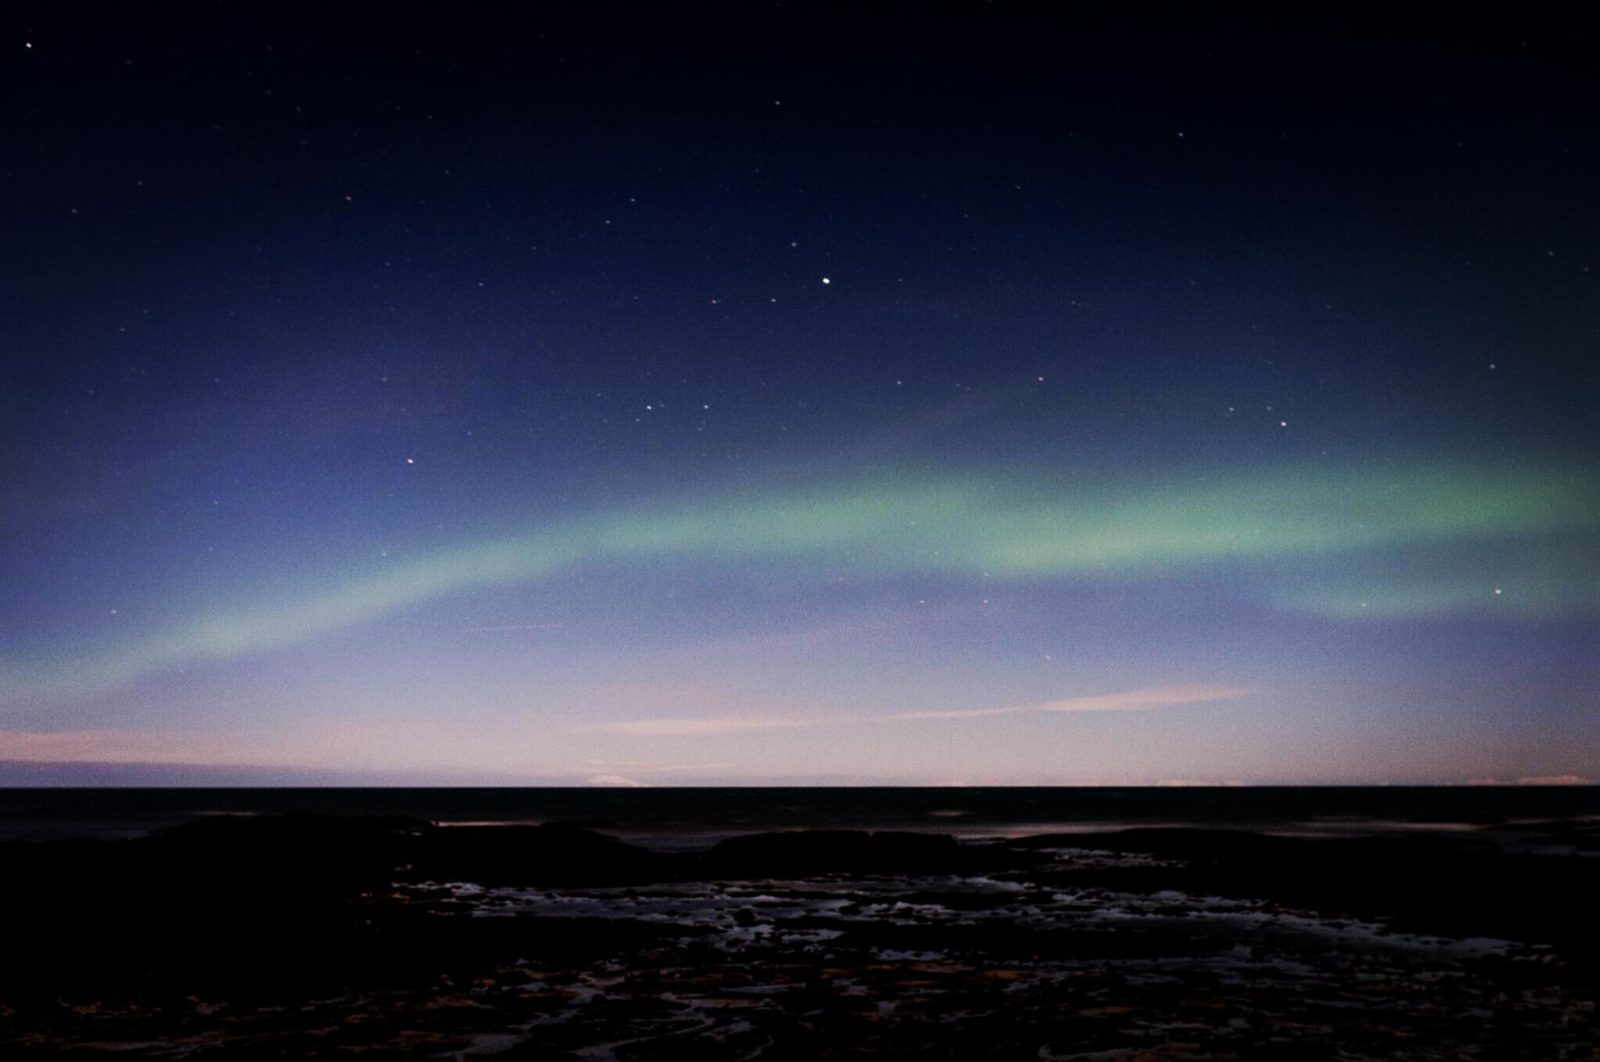 How to phototgraph the Northern Lights Iceland Auroras